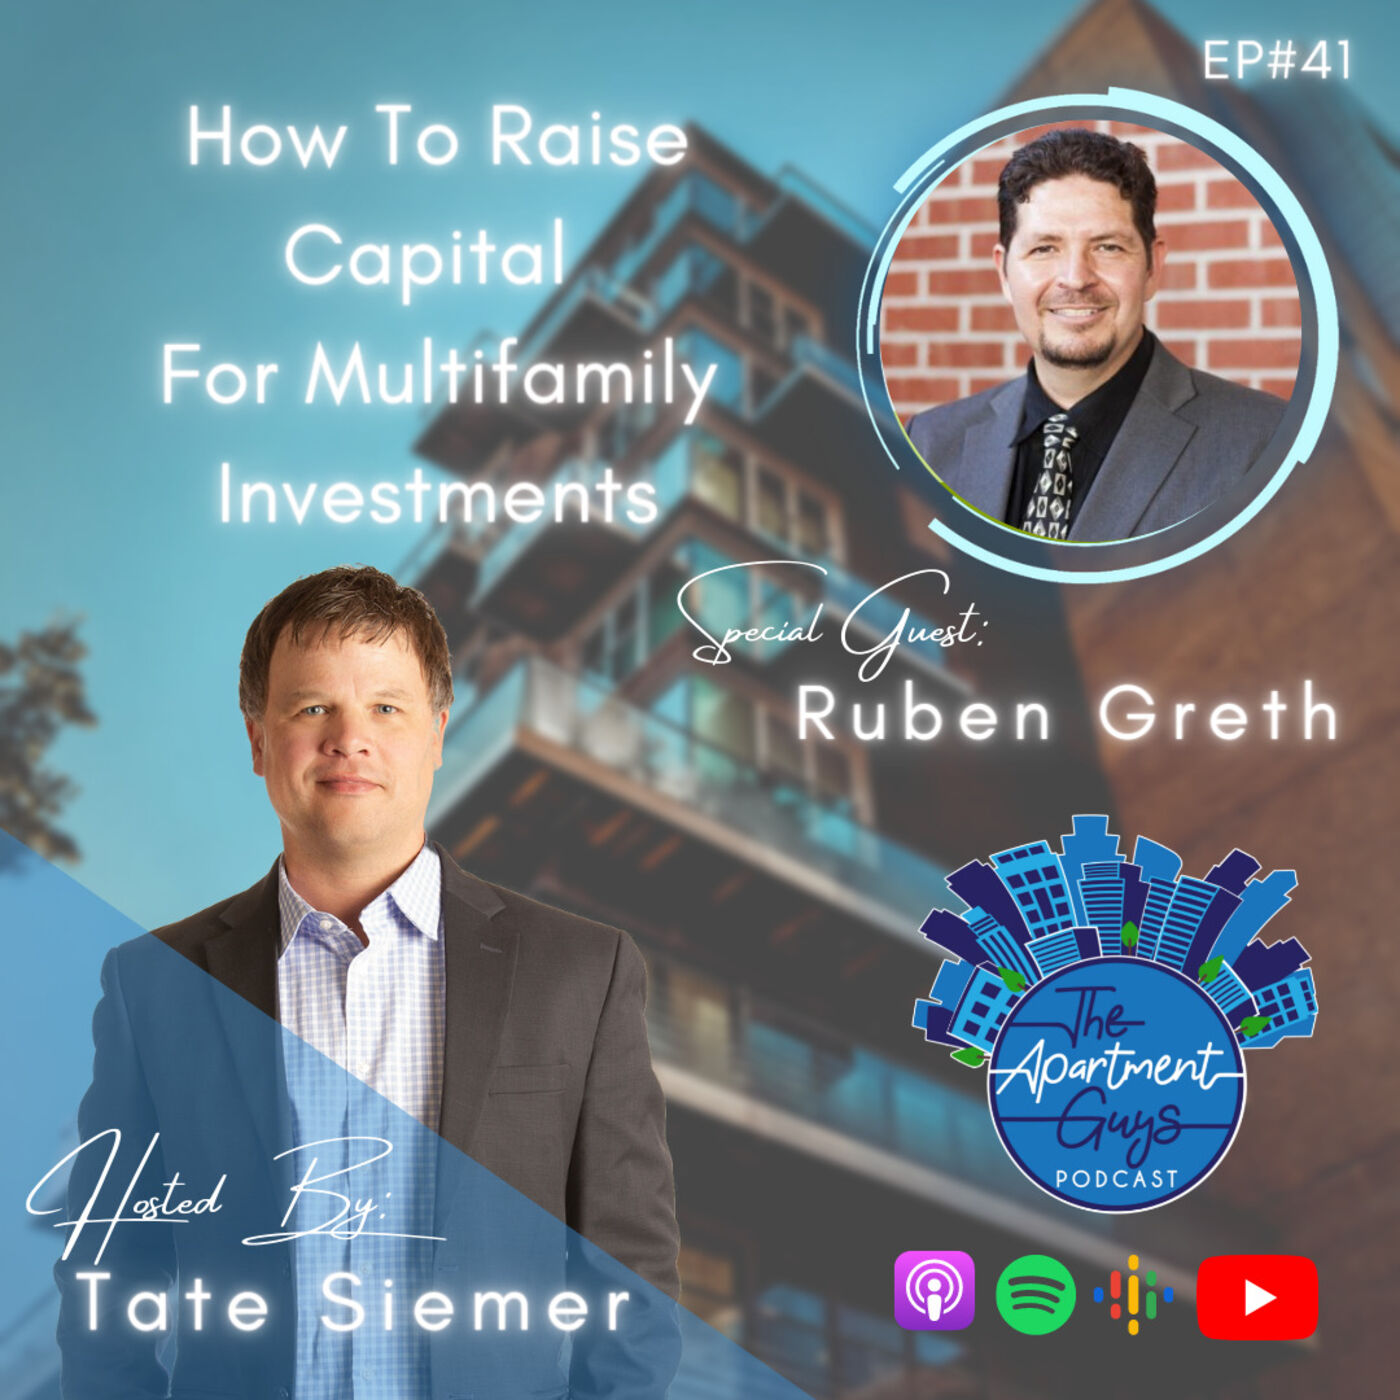 Episode 041: Ruben Greth - How To Raise Capital For Multifamily Investments